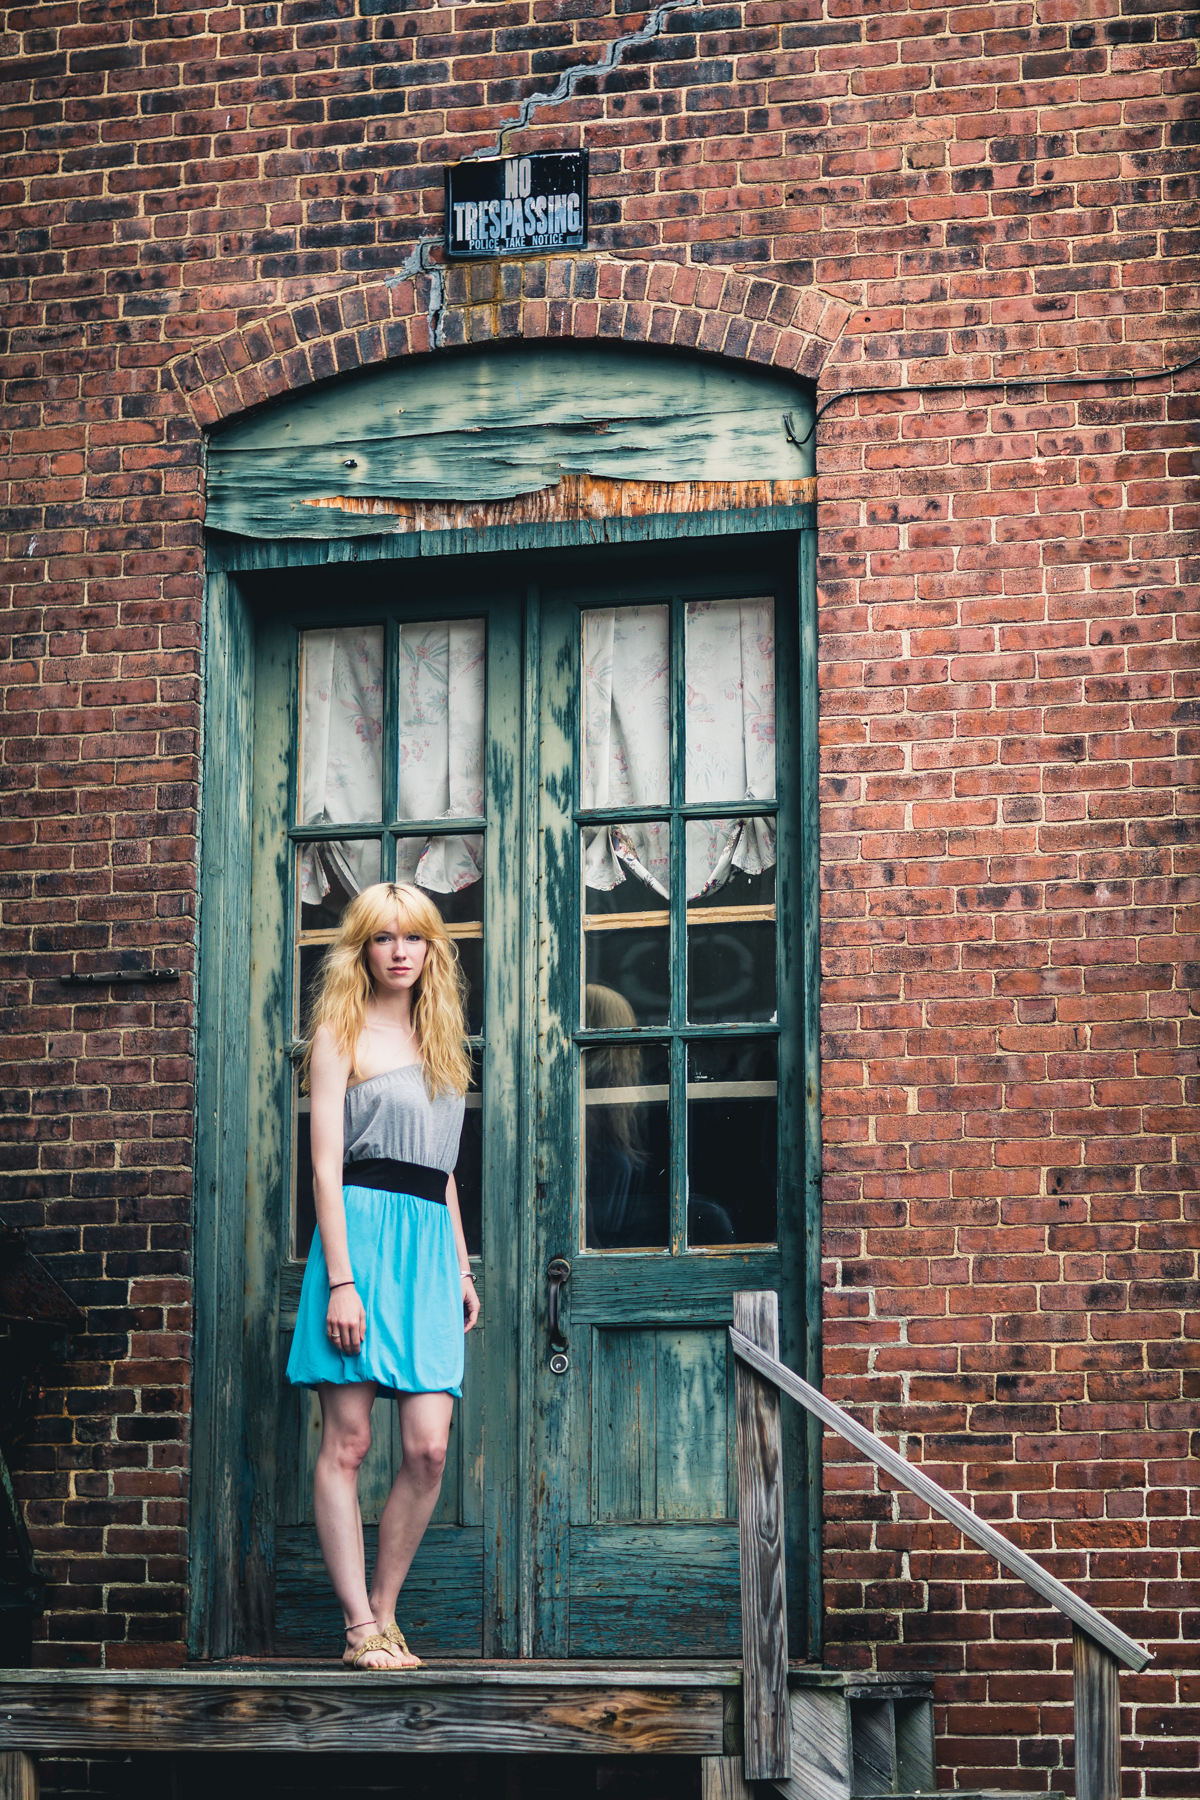 Senior Portrait Photography by Lee Germeroth Photography